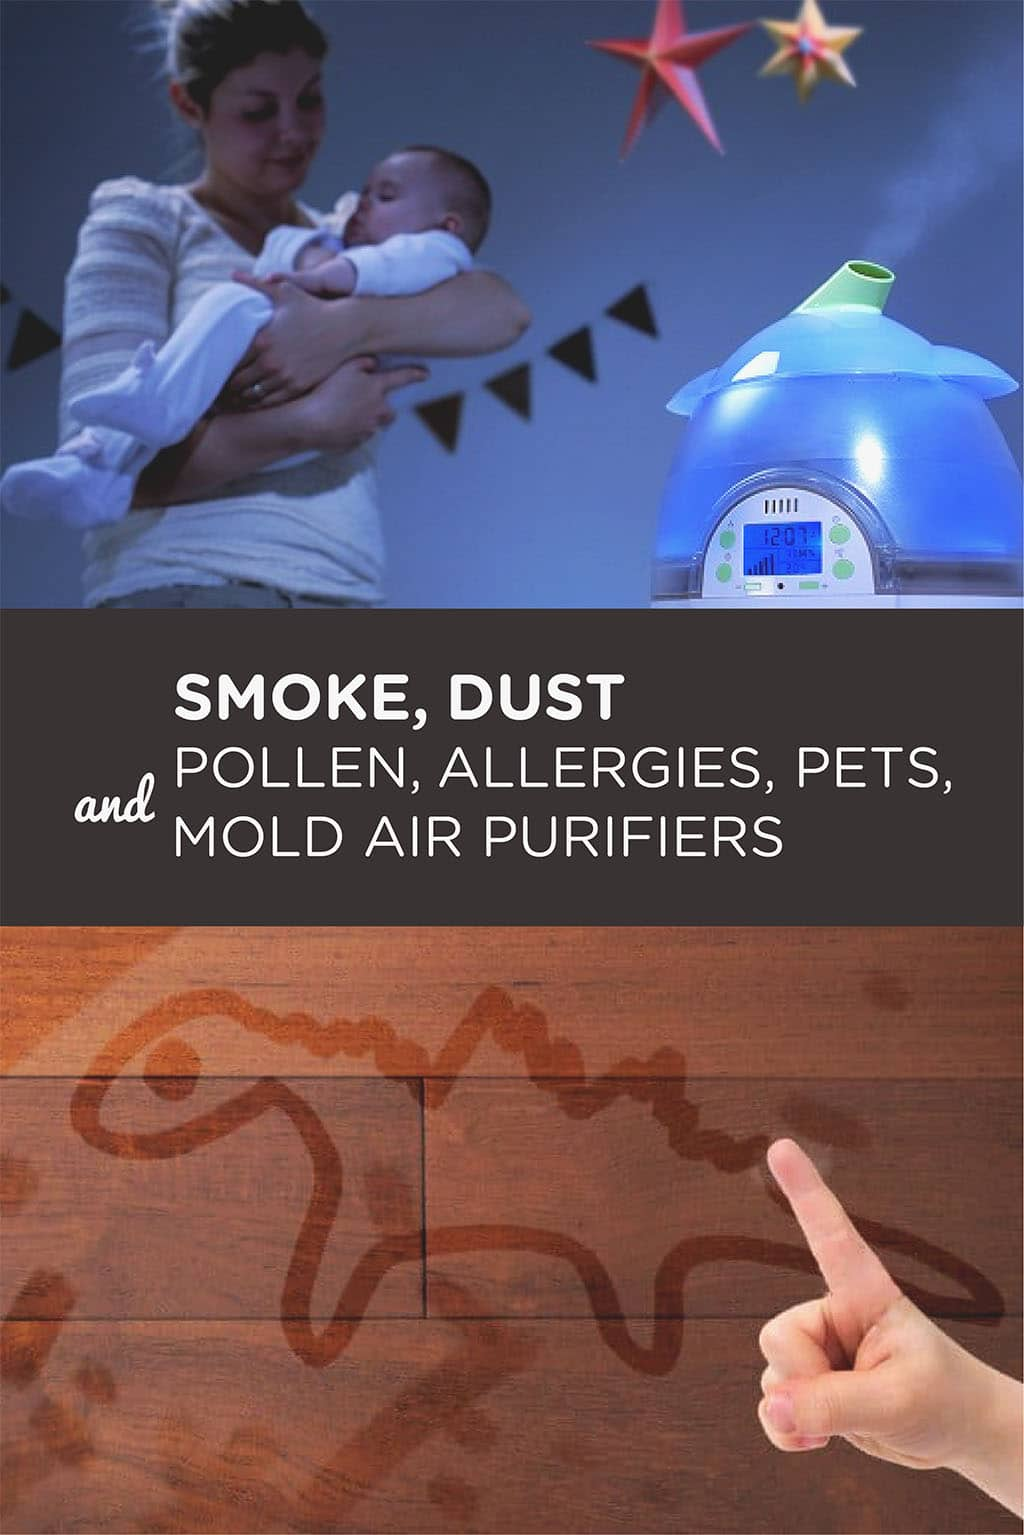 Smoke, Dust and Pollen, Allergies, Pets, and Mold Air Purifiers